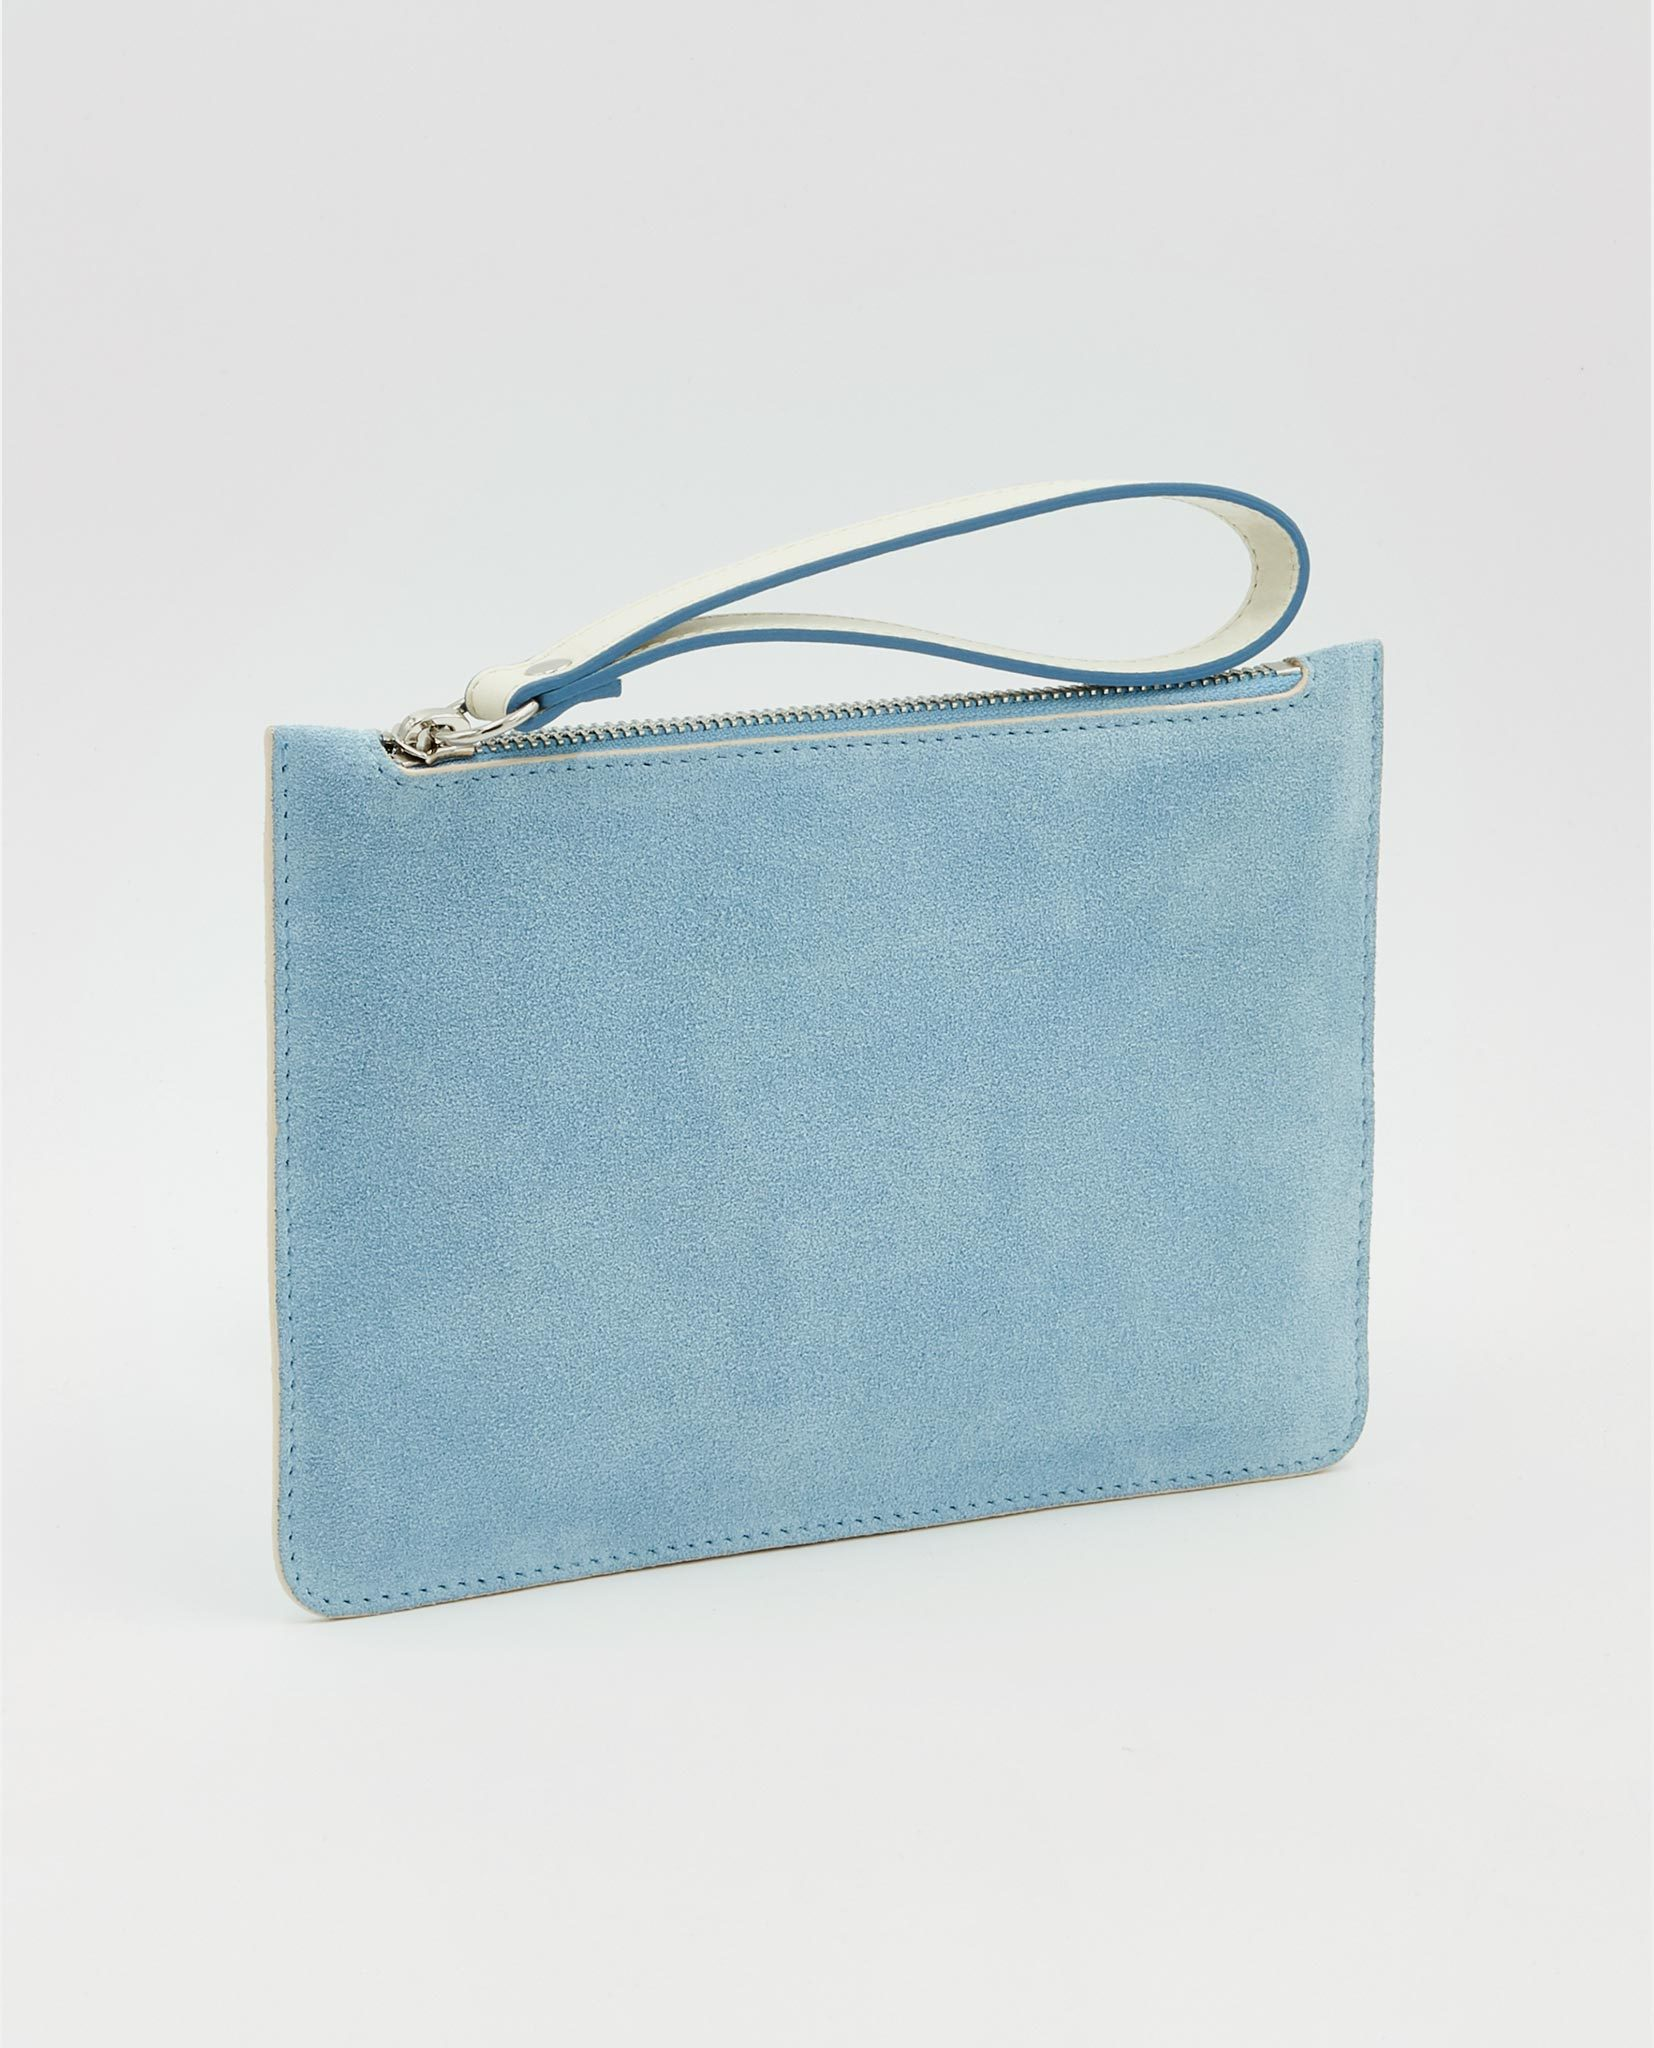 Soofre Small Suede Leather Pouch Arctic-Blue-Beige